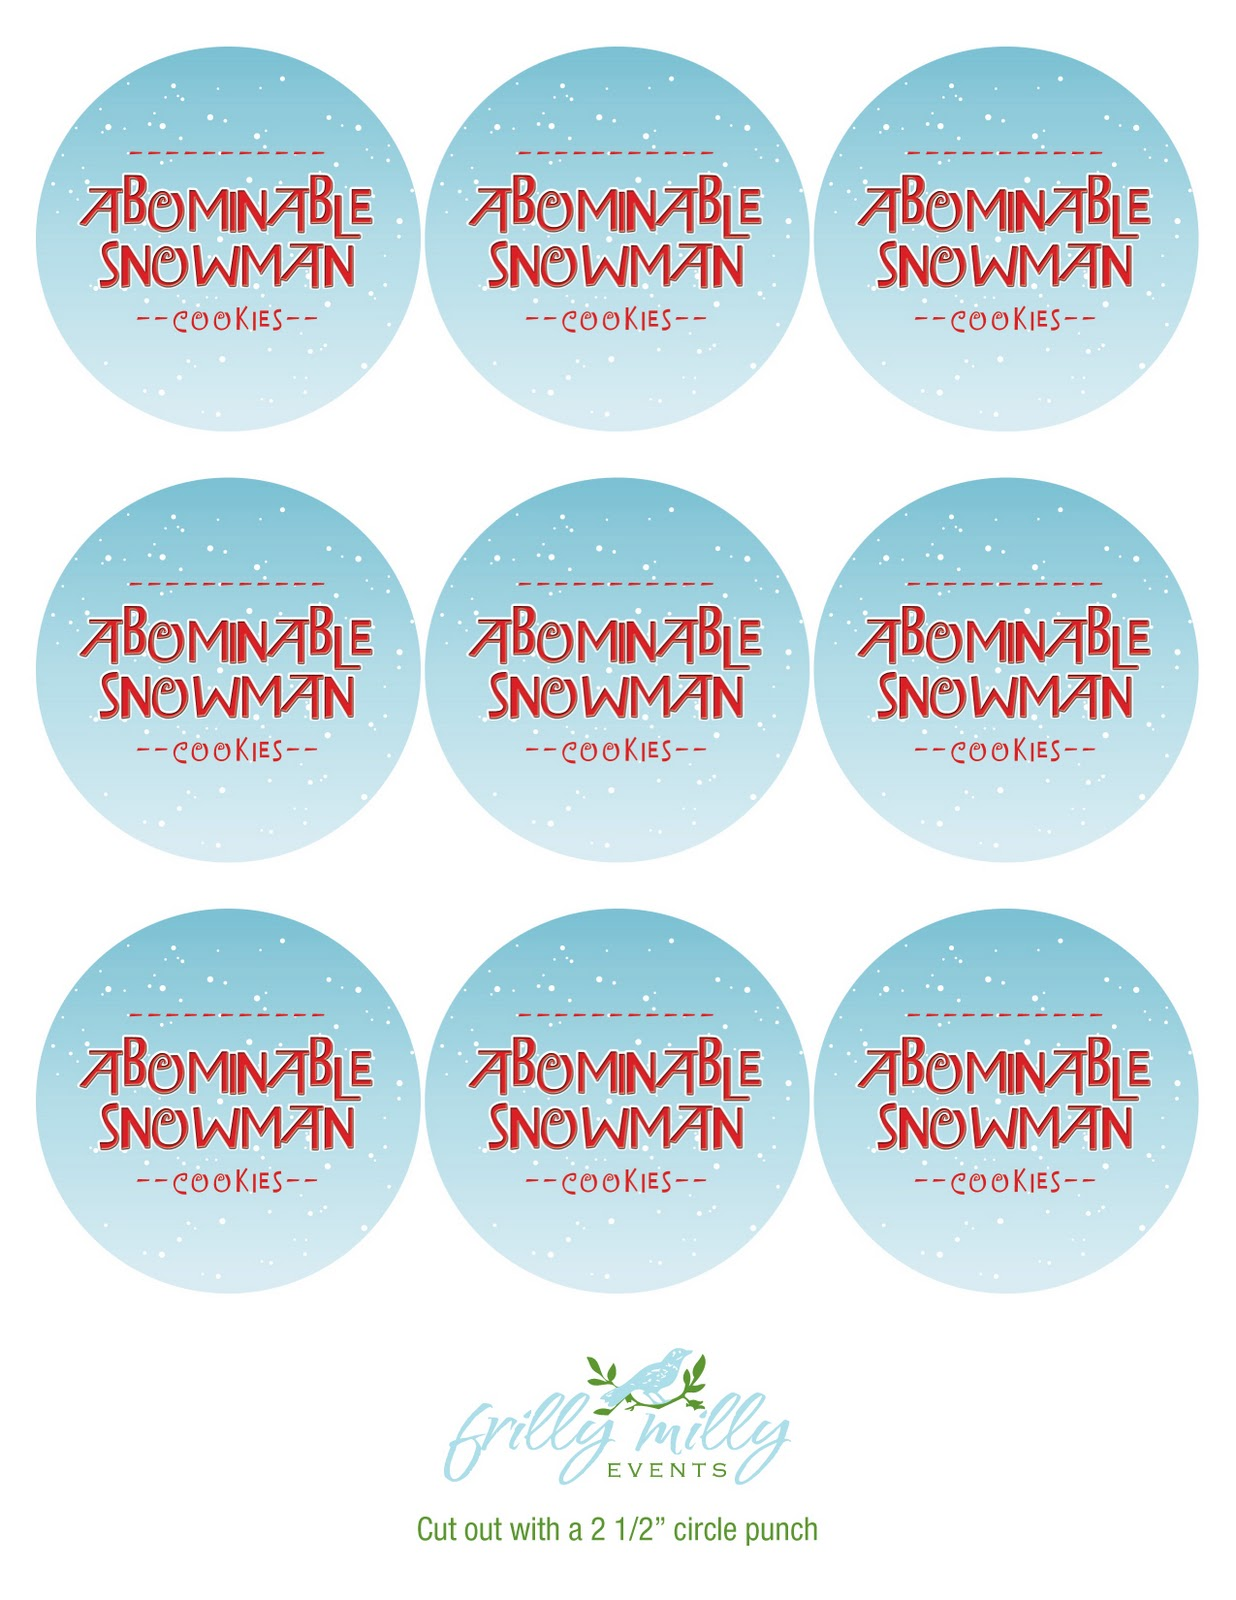 Frilly Milly Events Abominable Snowman Cookies In A Jar Updated